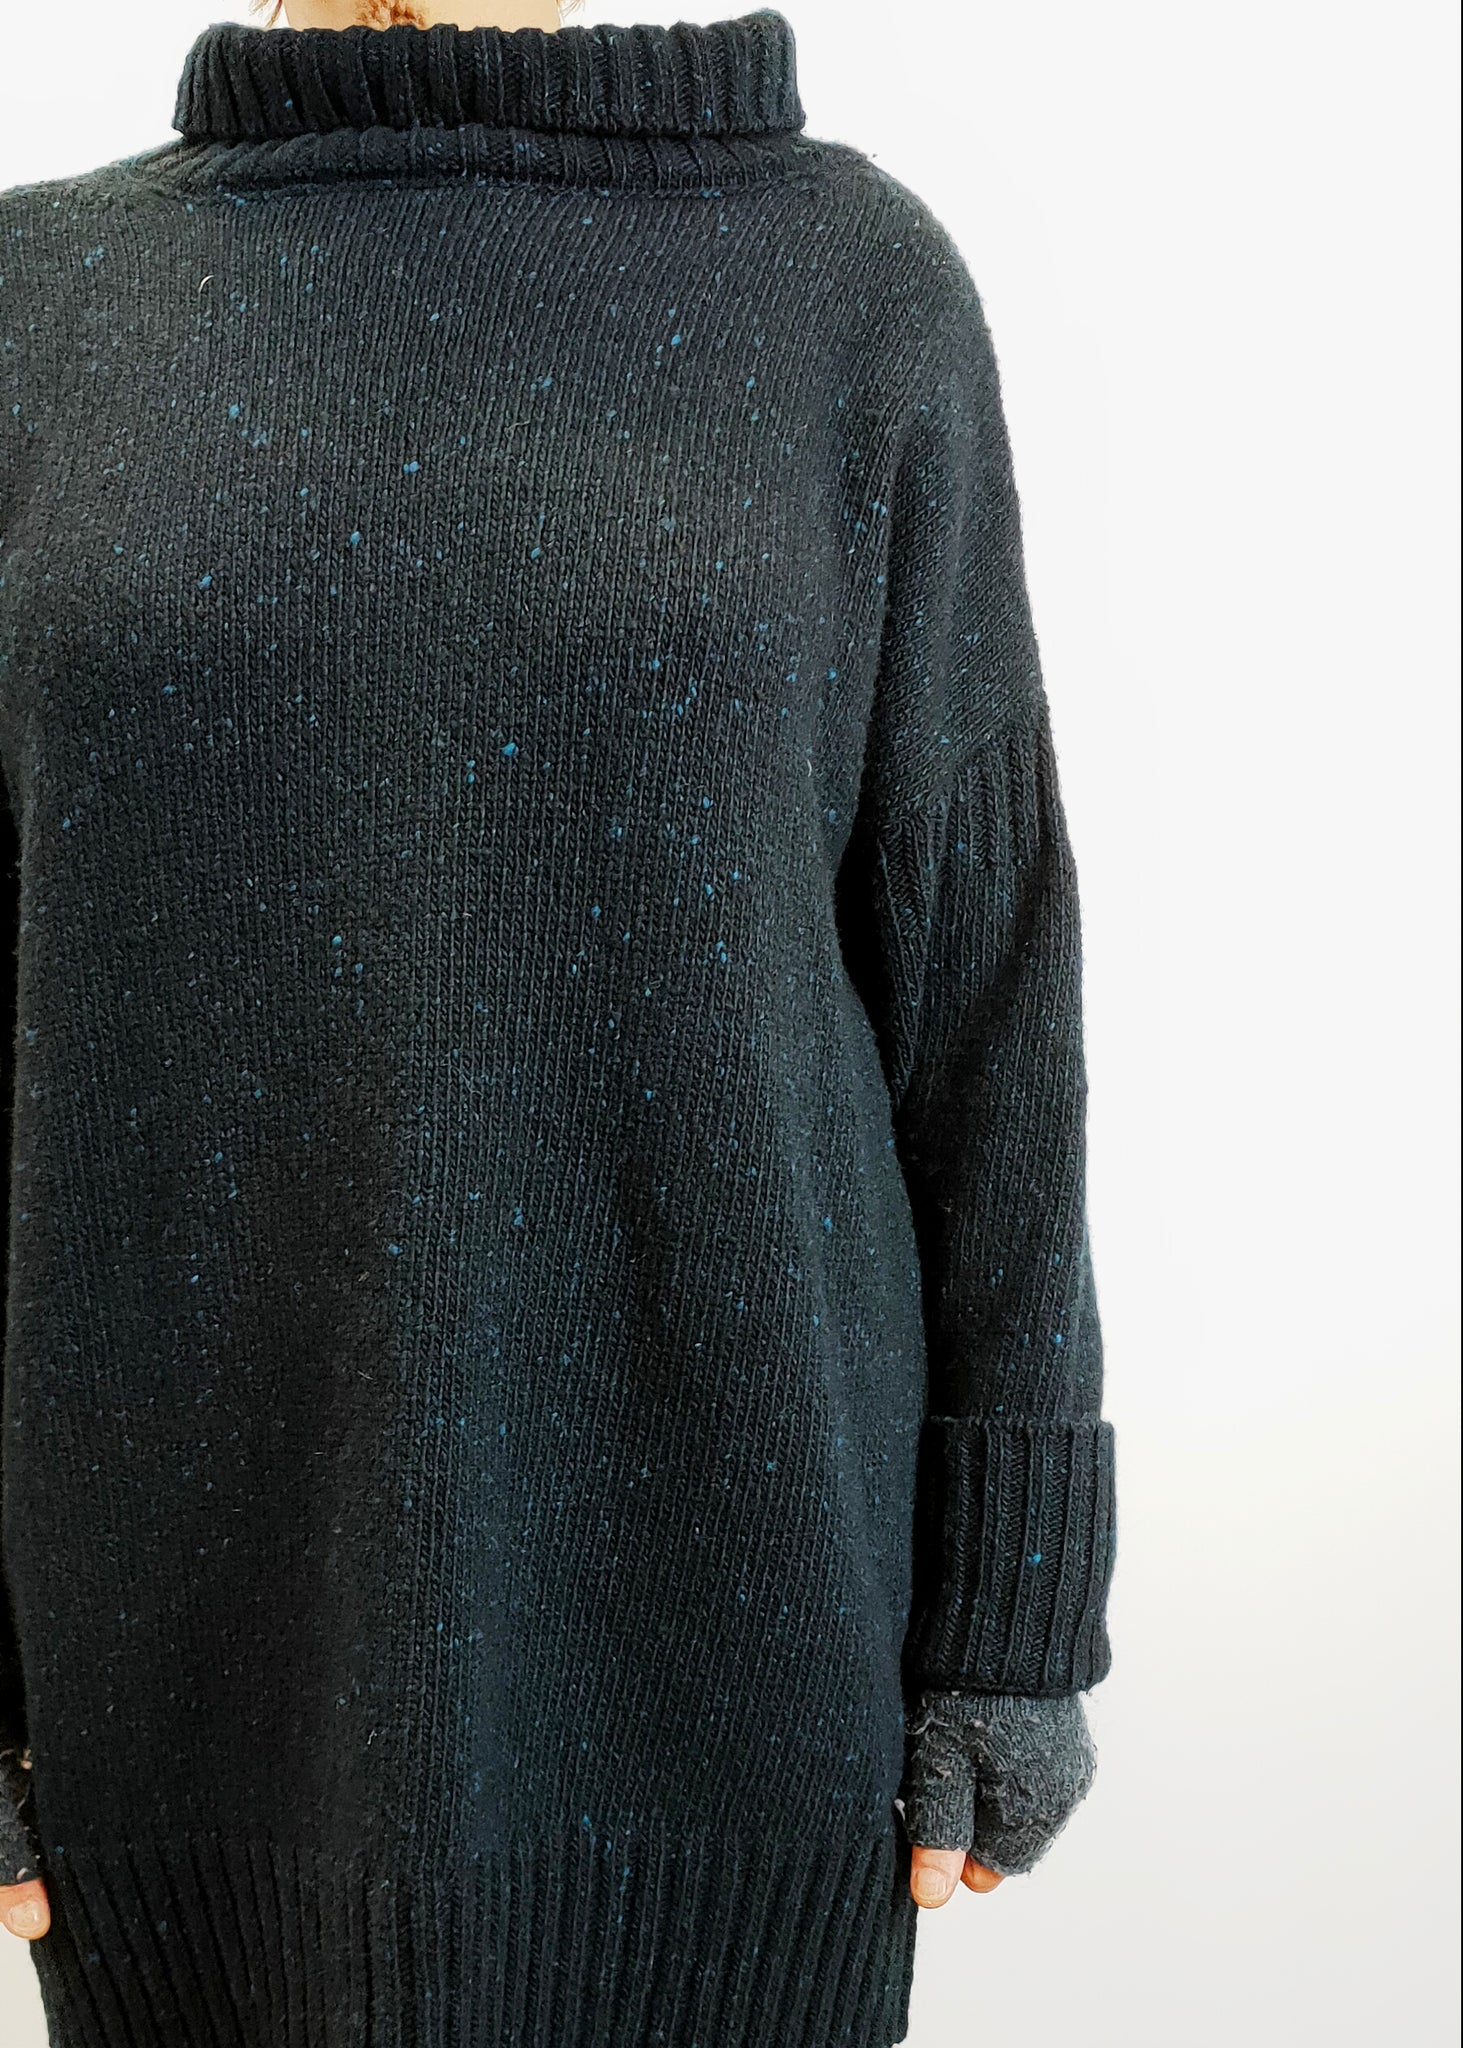 McConnell Knit Jumper